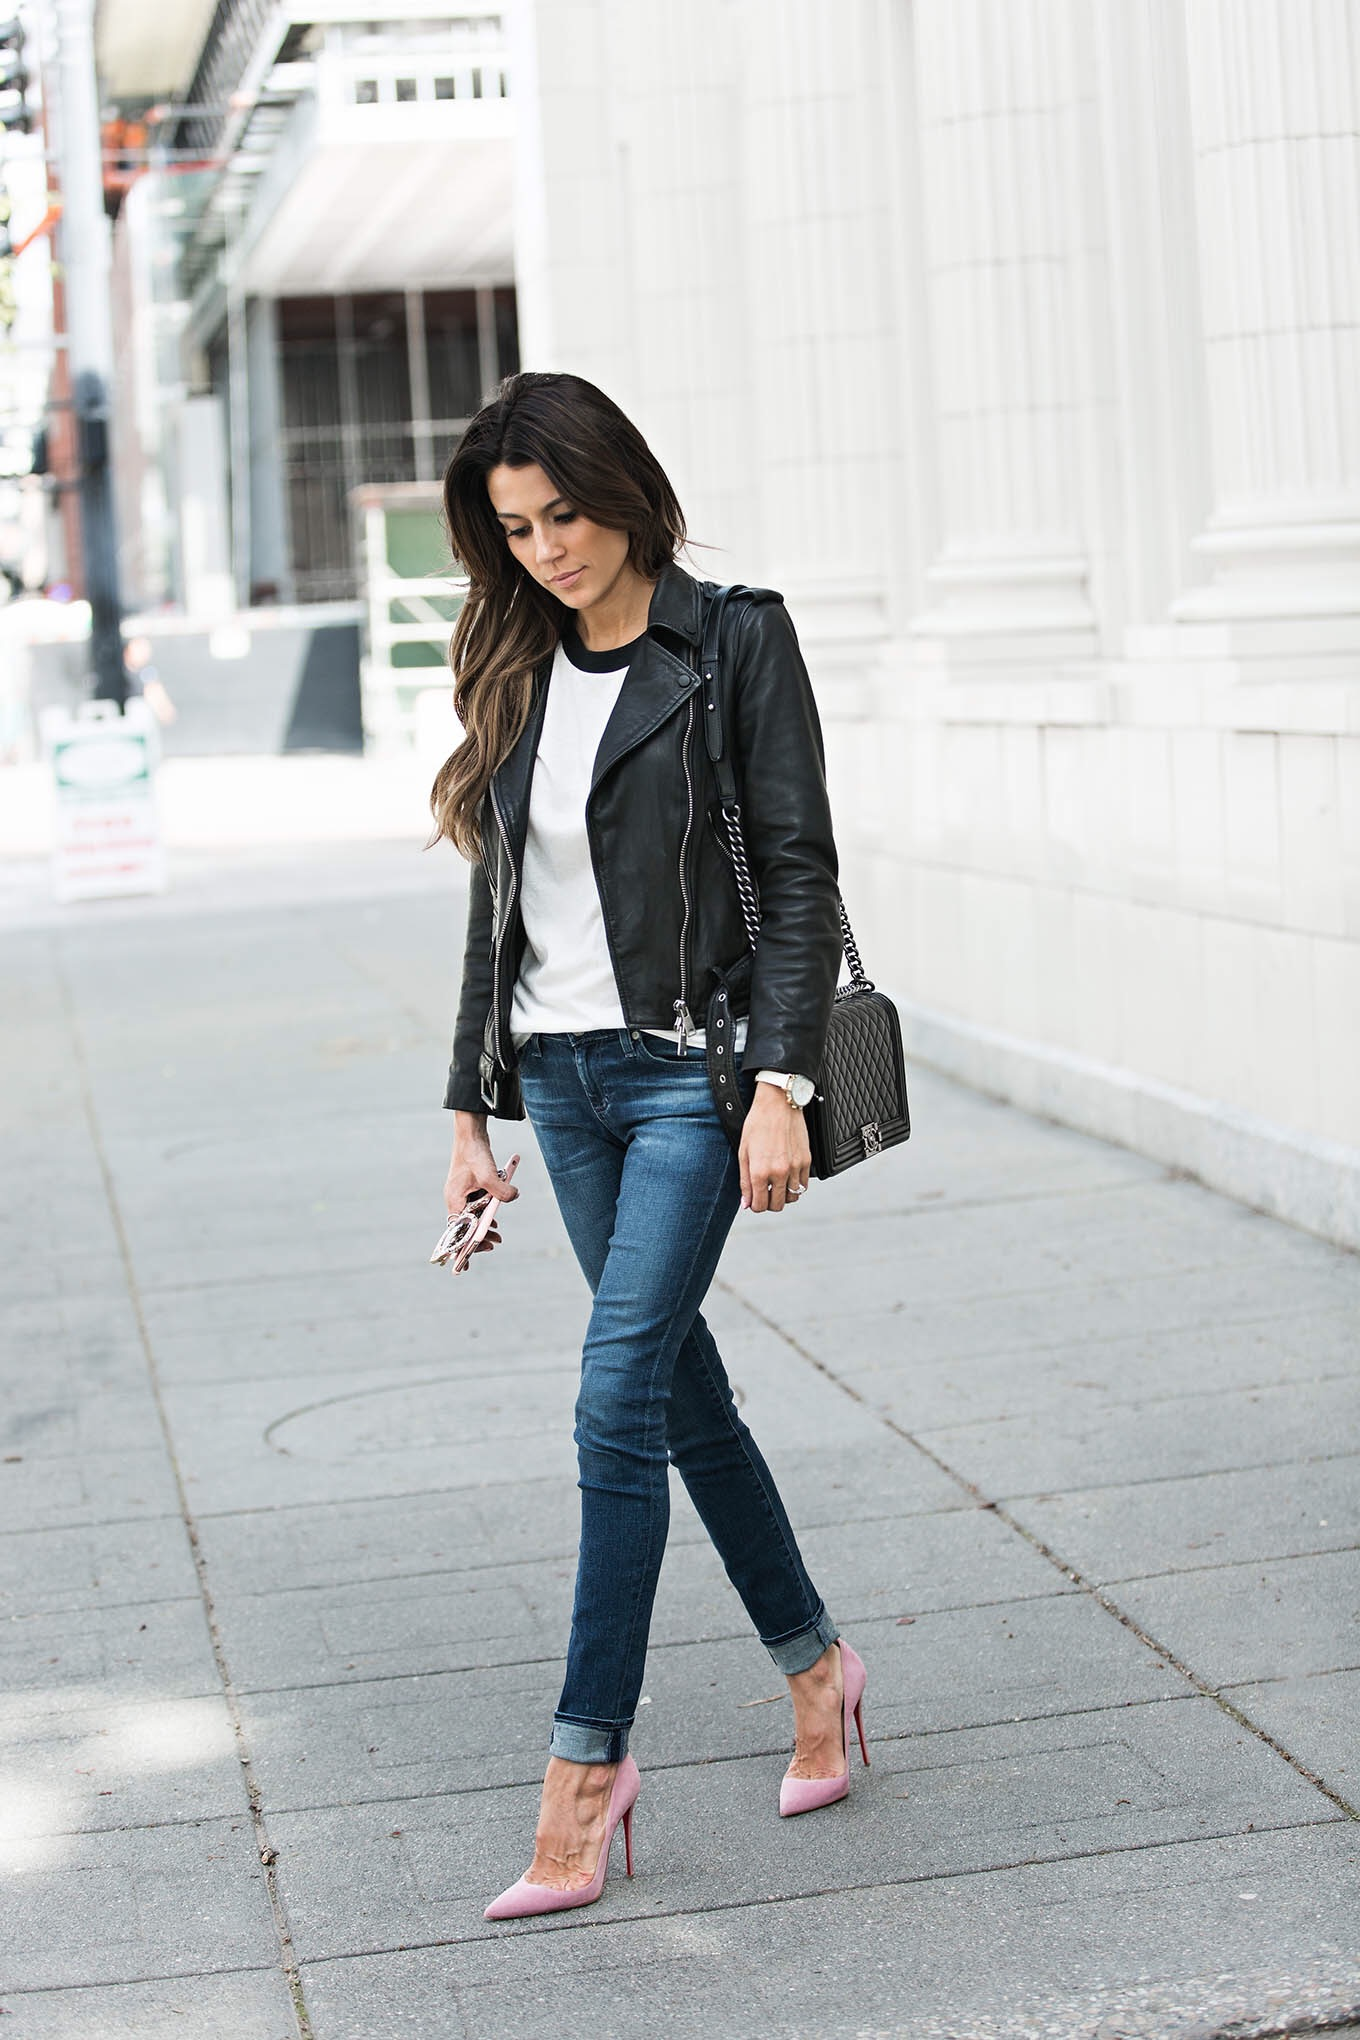 Denim style leather jacket